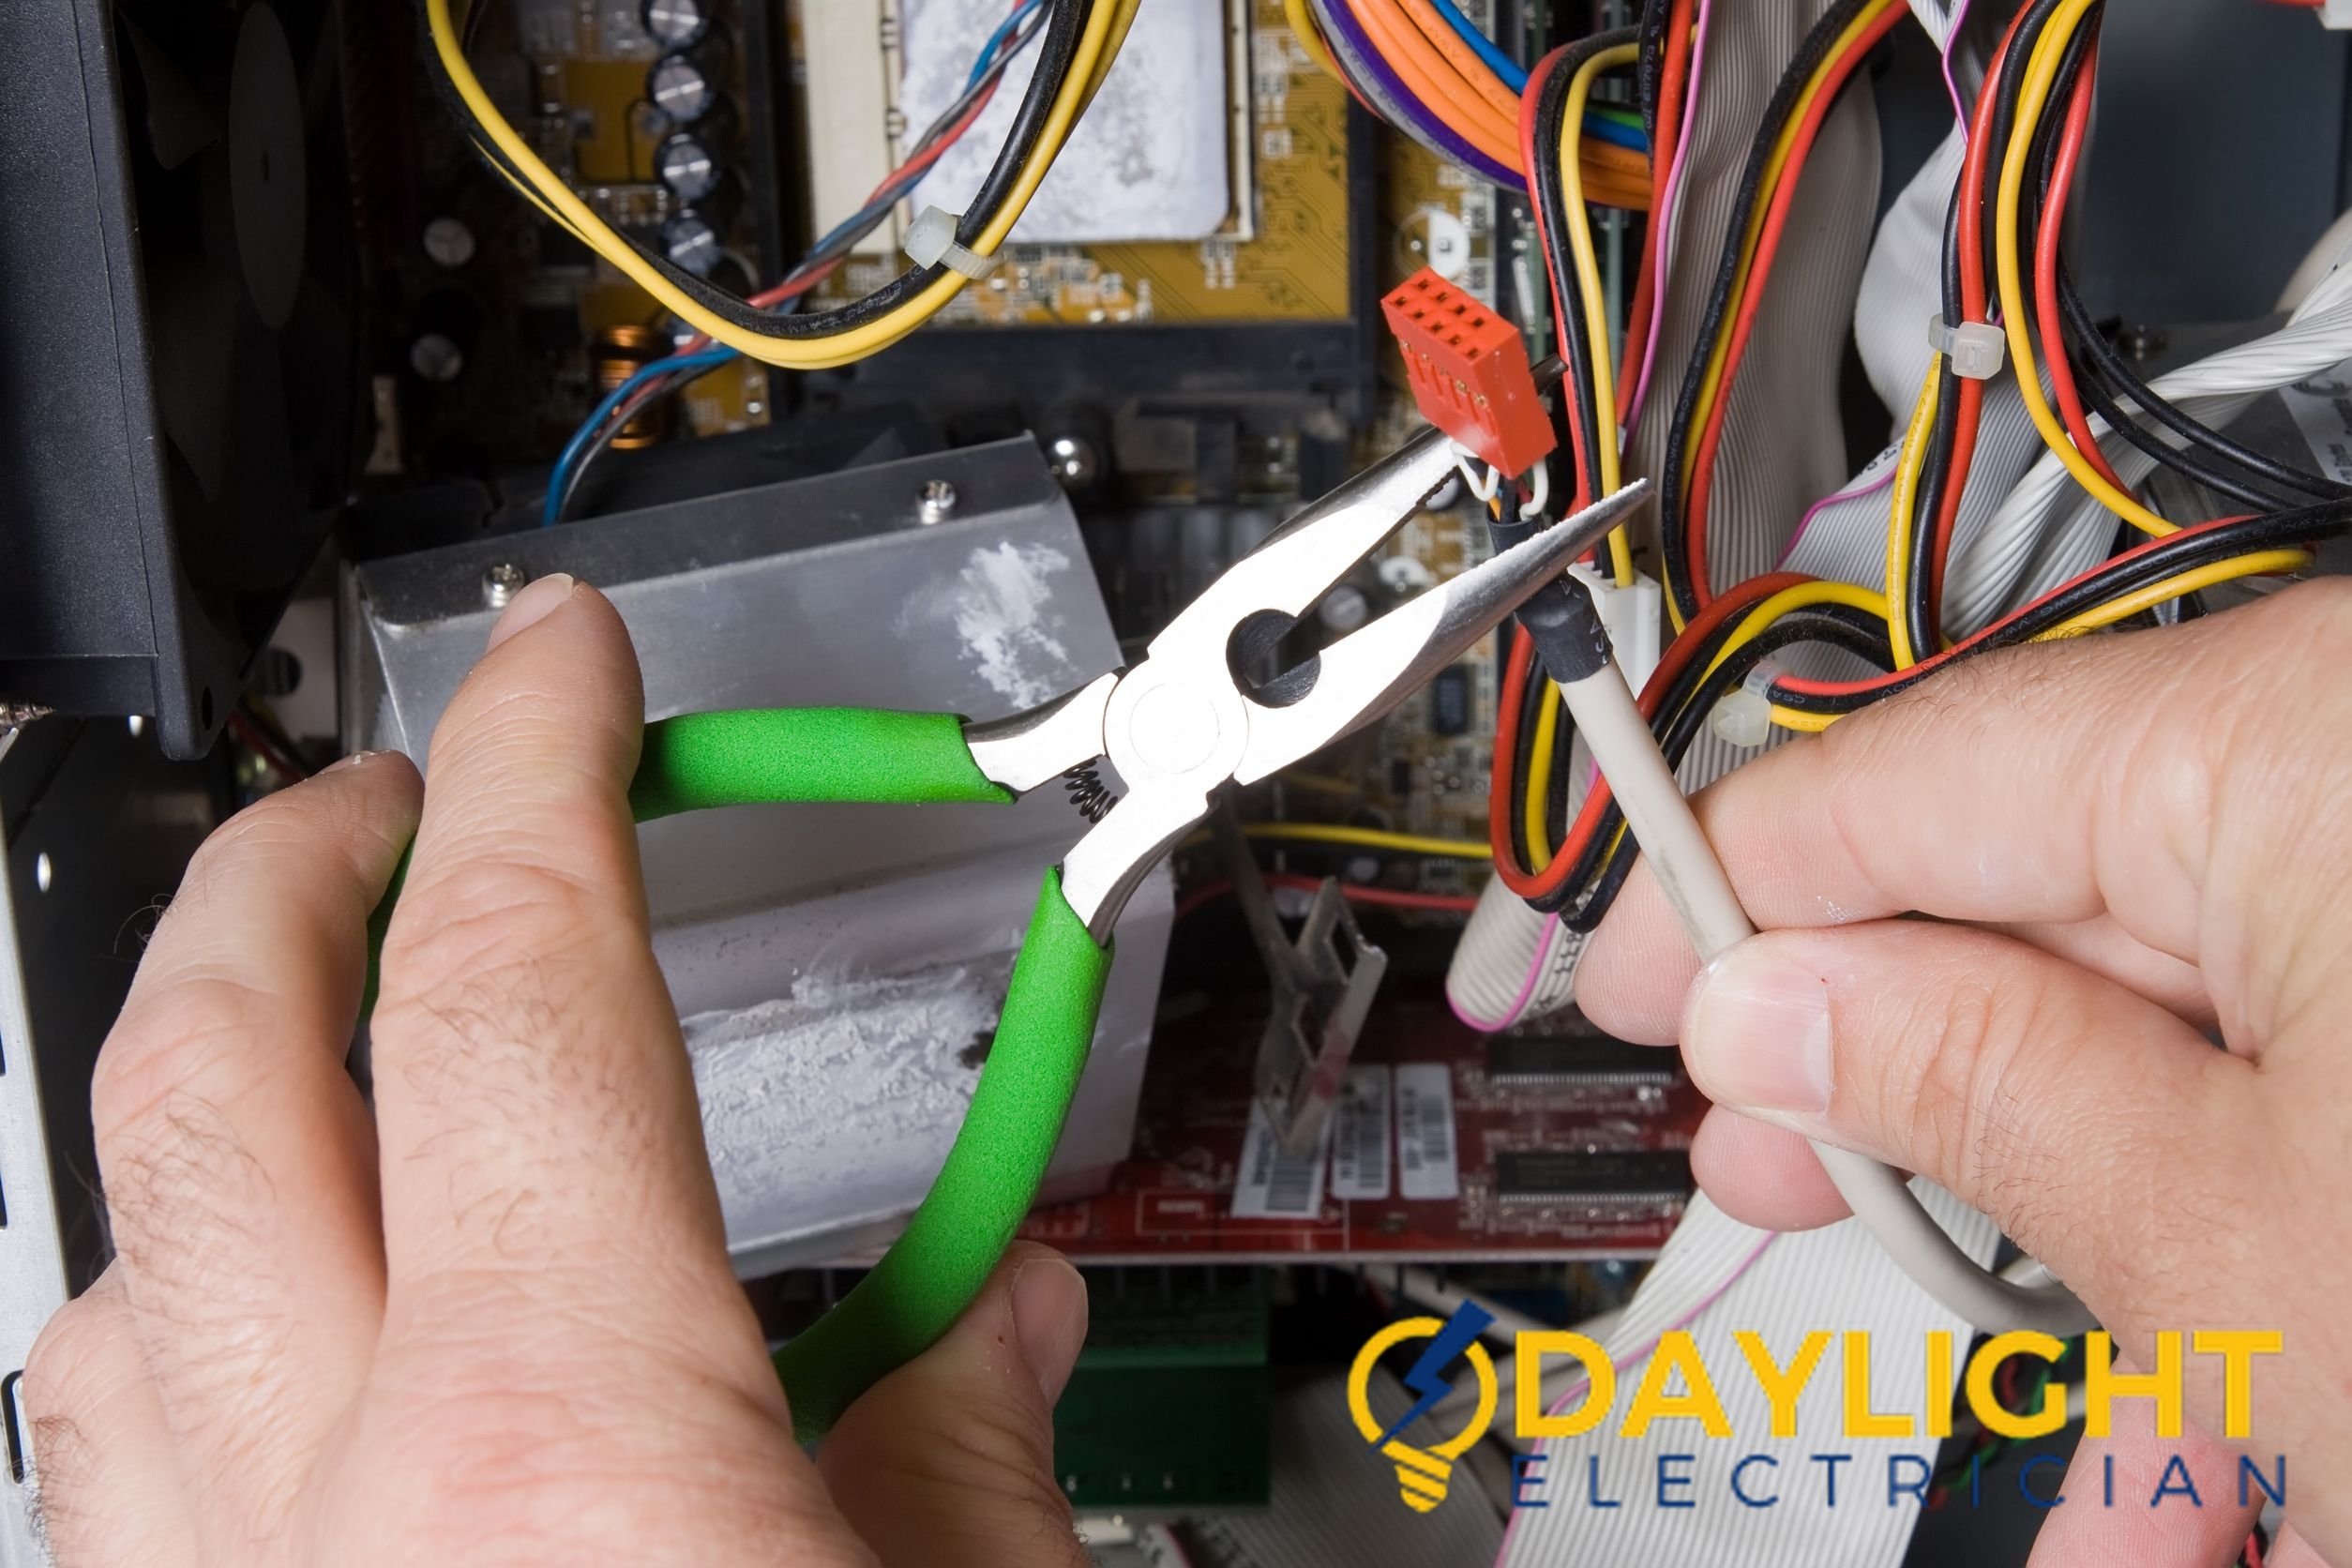 electrical contractor daylight electrician singapore